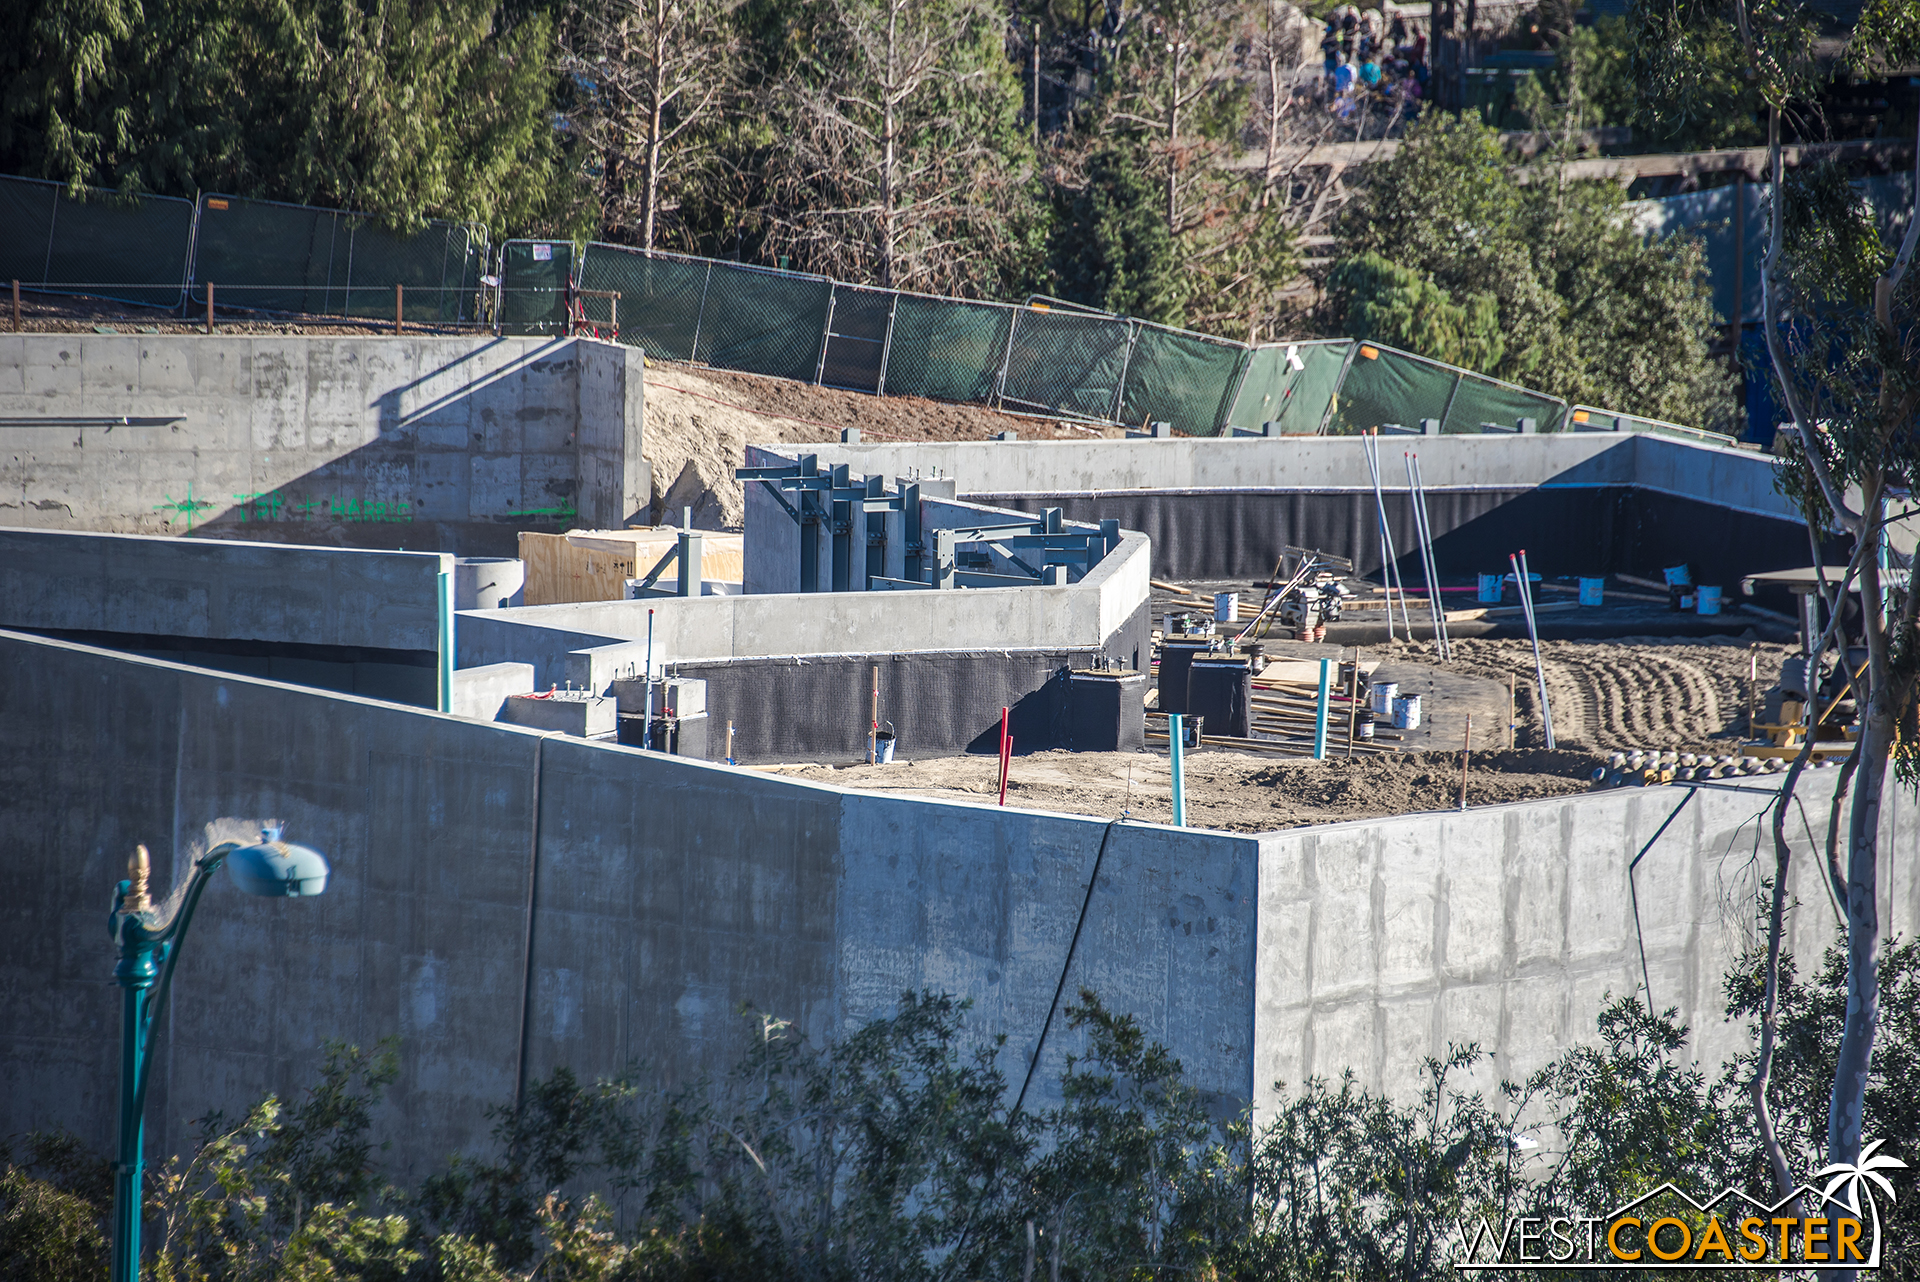 Looking toward the Critter Country side, it looks like they're actually back filling earth into this area of Galaxy's Edge. I had thought it might contain more building, but instead, those walls are retaining!